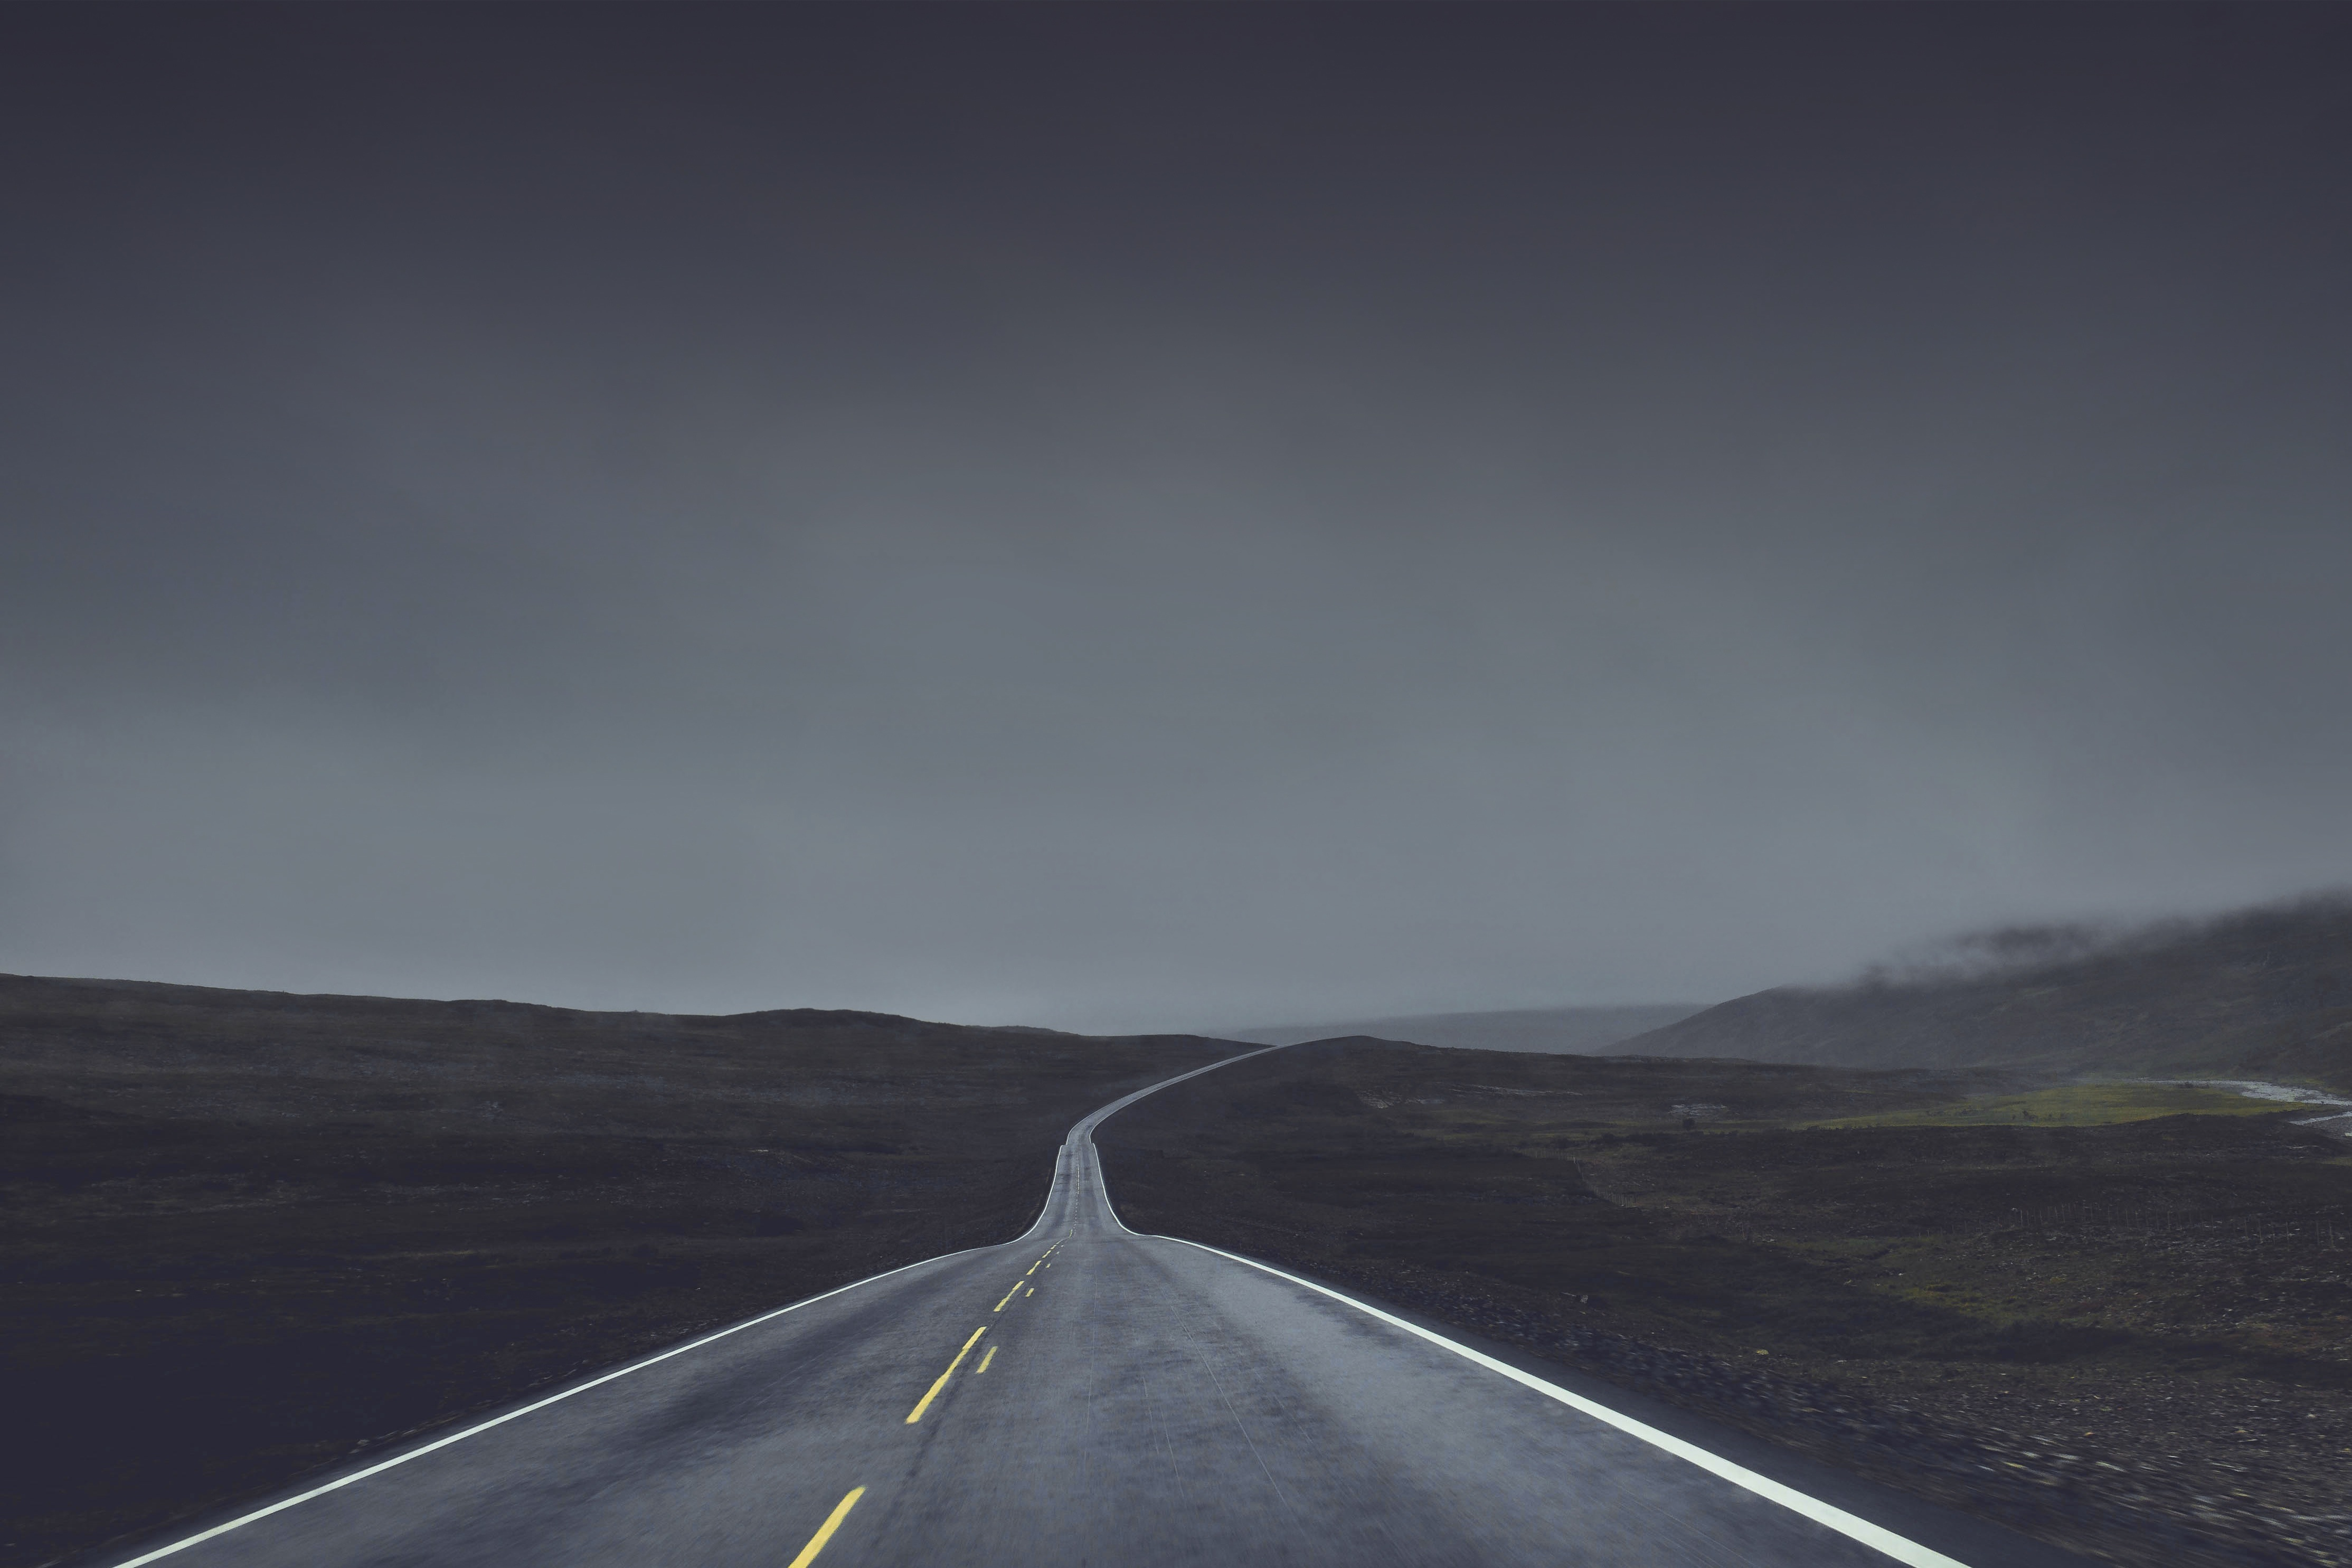 Islamic Quotes And Wallpapers Picalls Com Lonely Road By Olivier Guillard